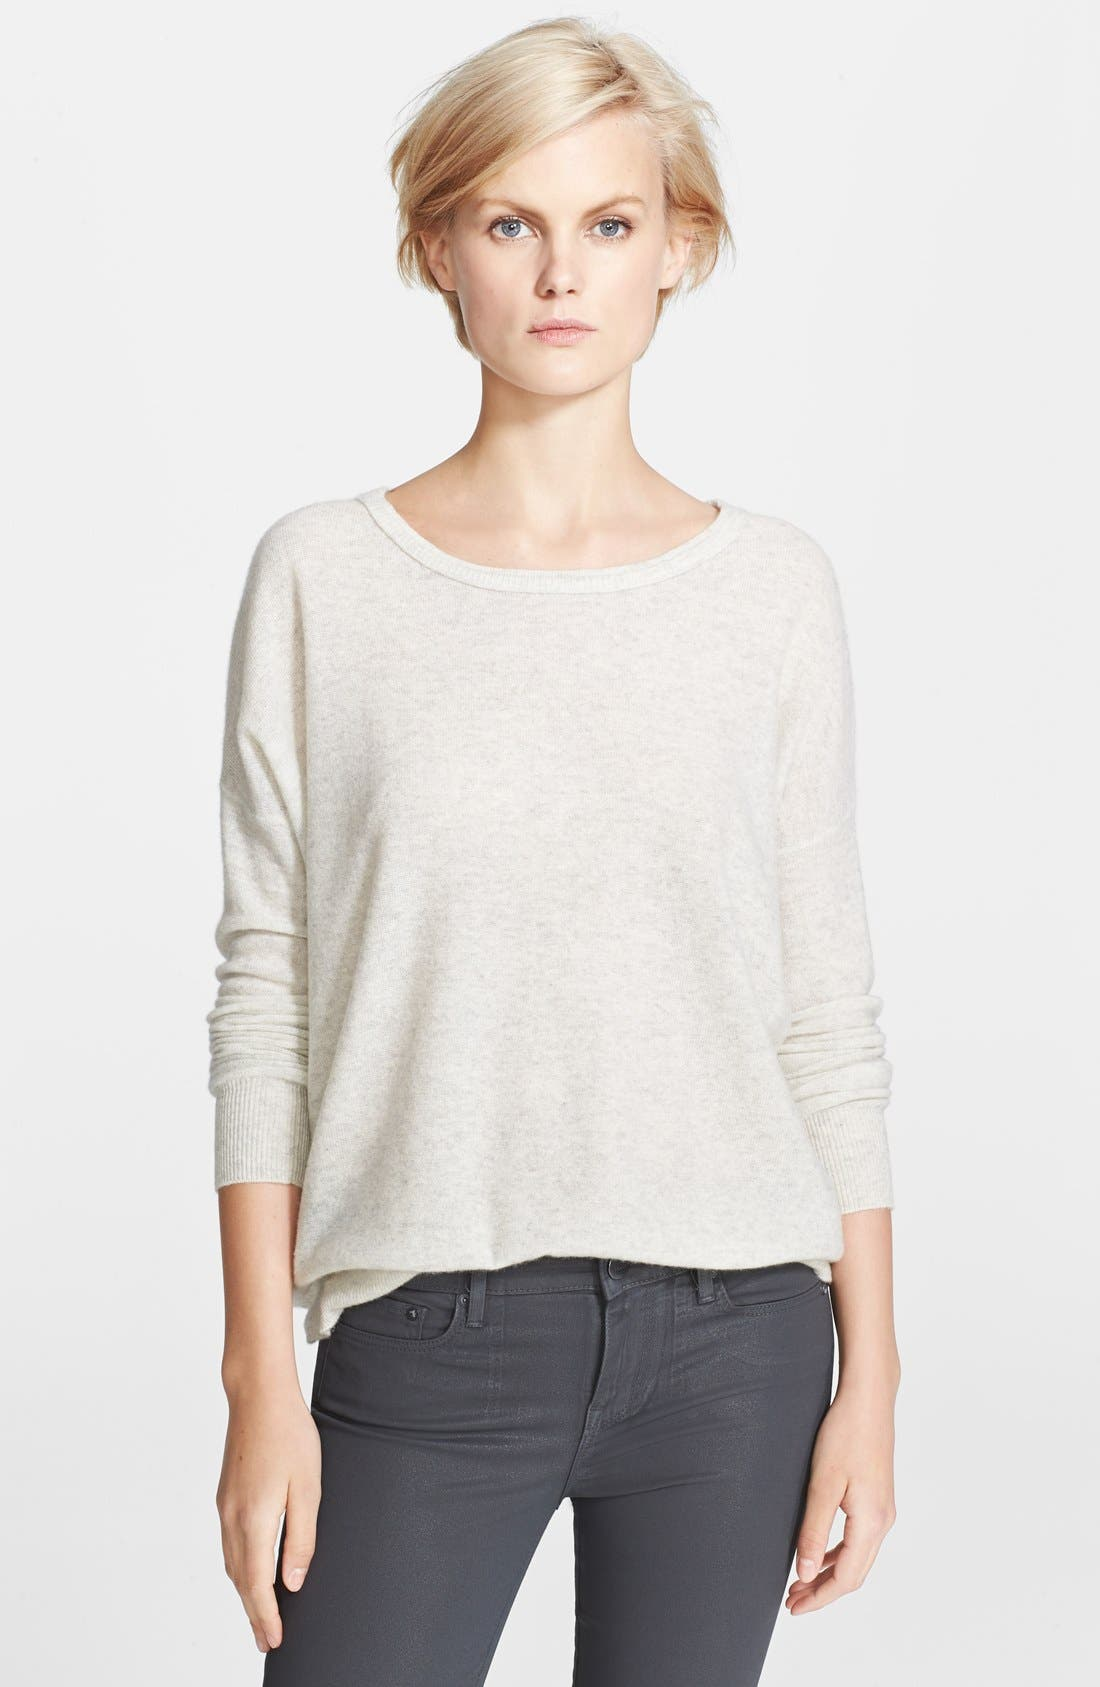 Alternate Image 1 Selected - Vince 'Square' Cashmere Sweater